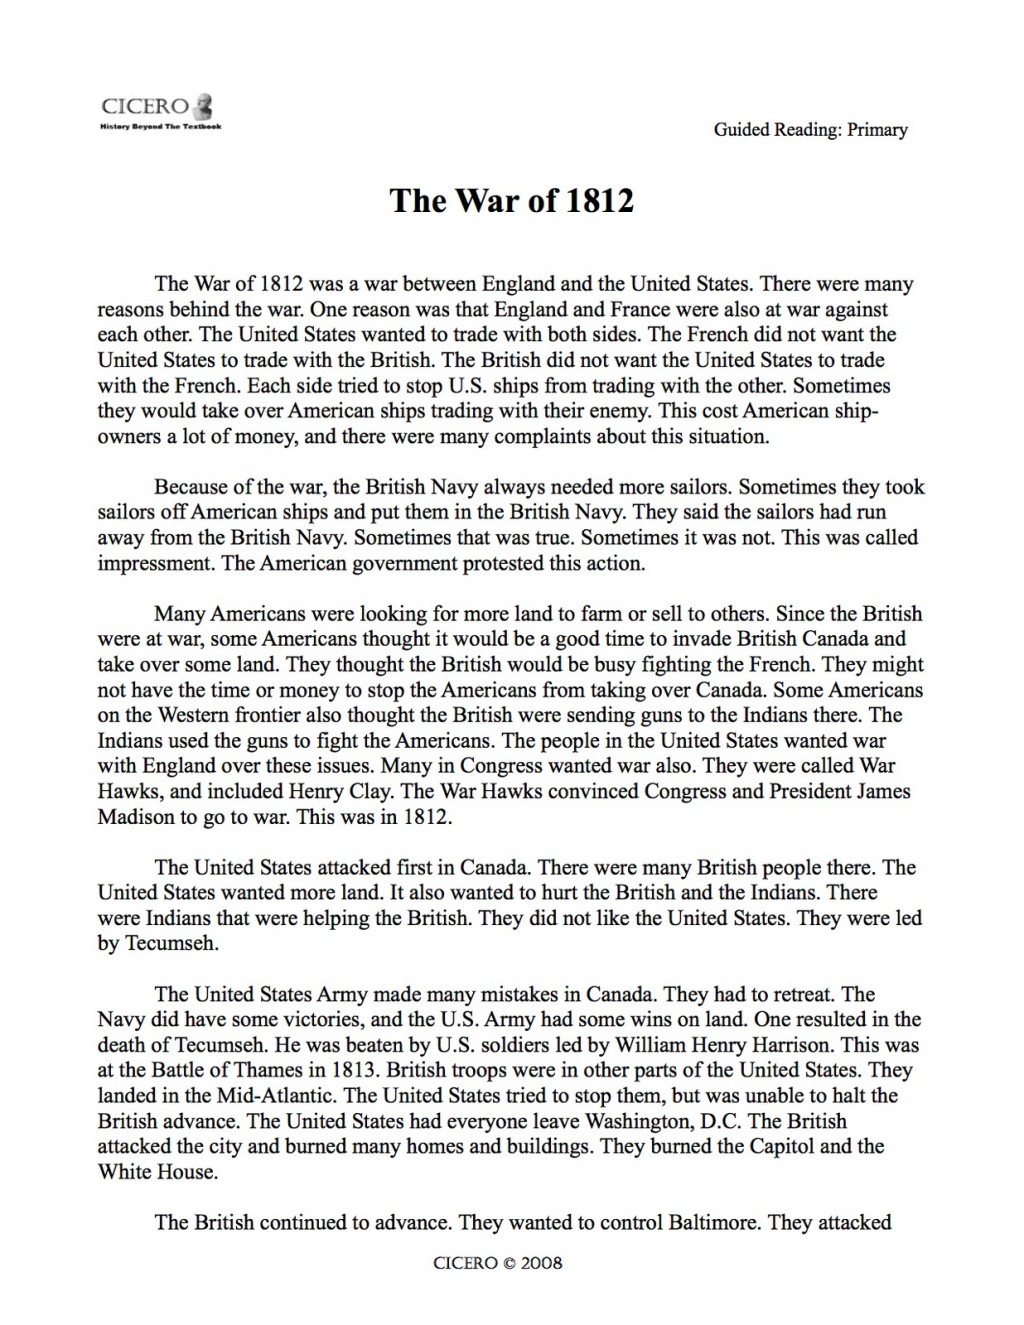 004 Trojan War Essay Doorway Keyword Heilbrunn Argumentative Against Transgender Warof1812re On Bathrooms Stirring Persuasive Topics Paper Outline Large